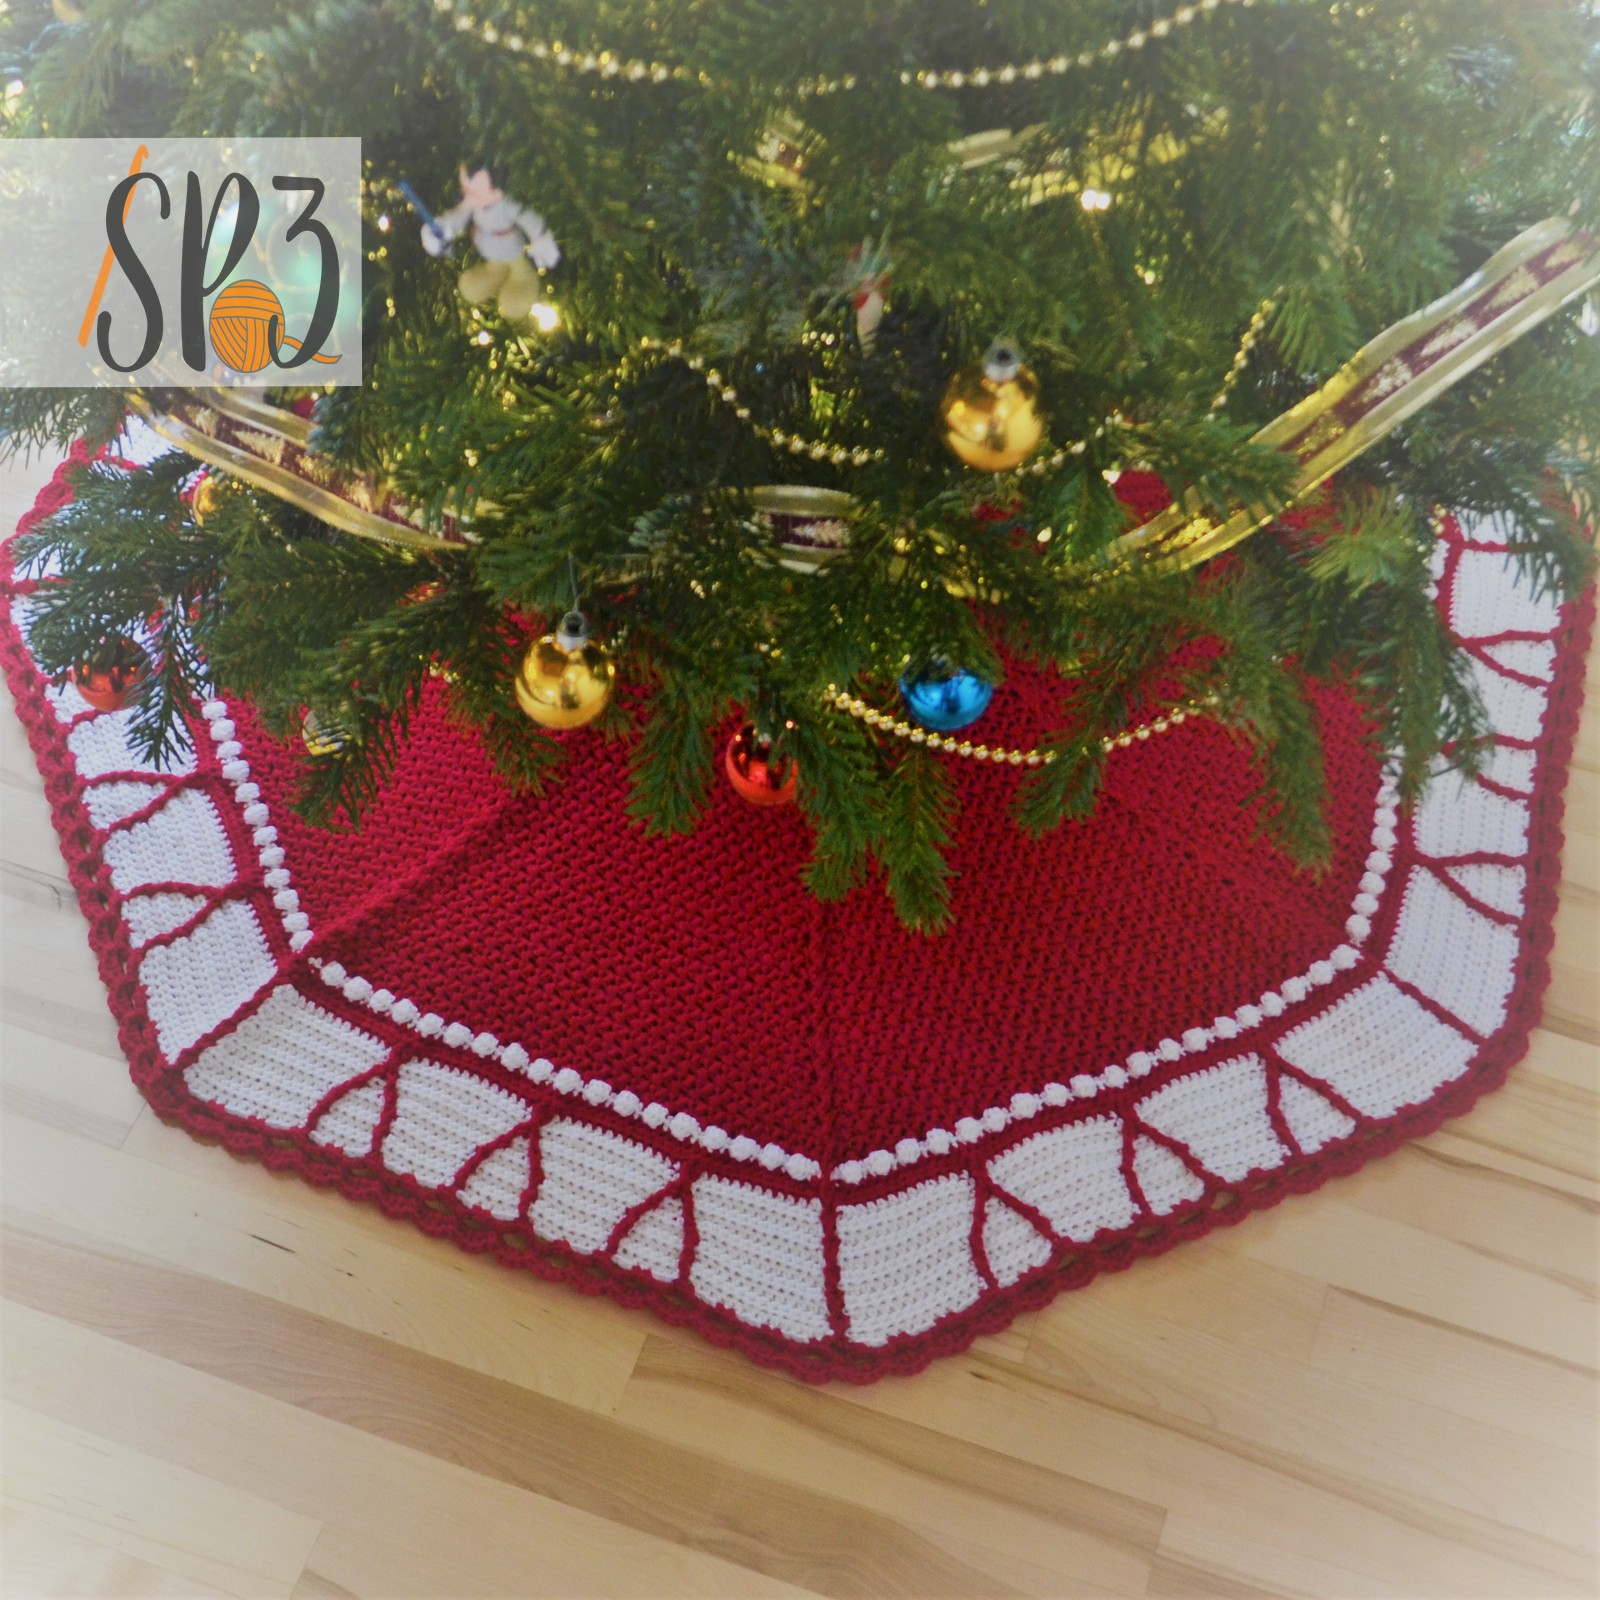 You are currently viewing O' Christmas Tree Skirt Crochet Pattern